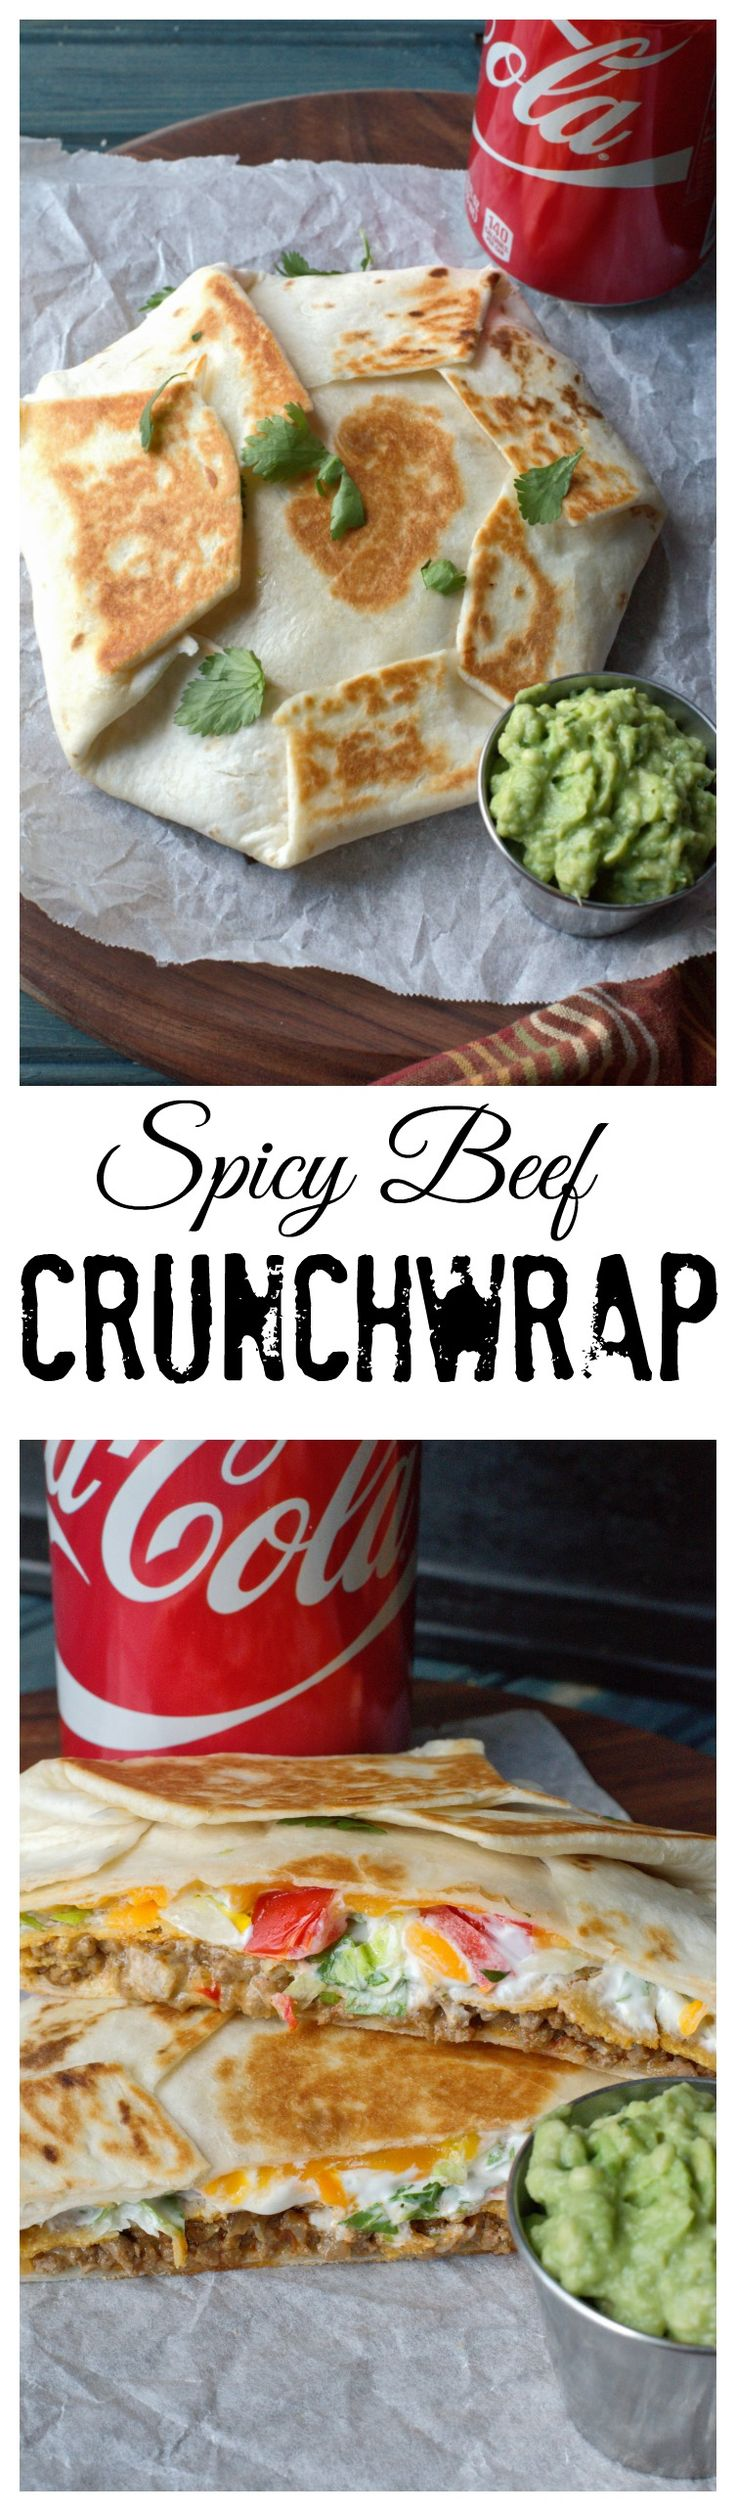 These Spicy beef crunchwraps are so easy and ridiculously amazing. A great twist for the typical taco night, and so much better then take out.